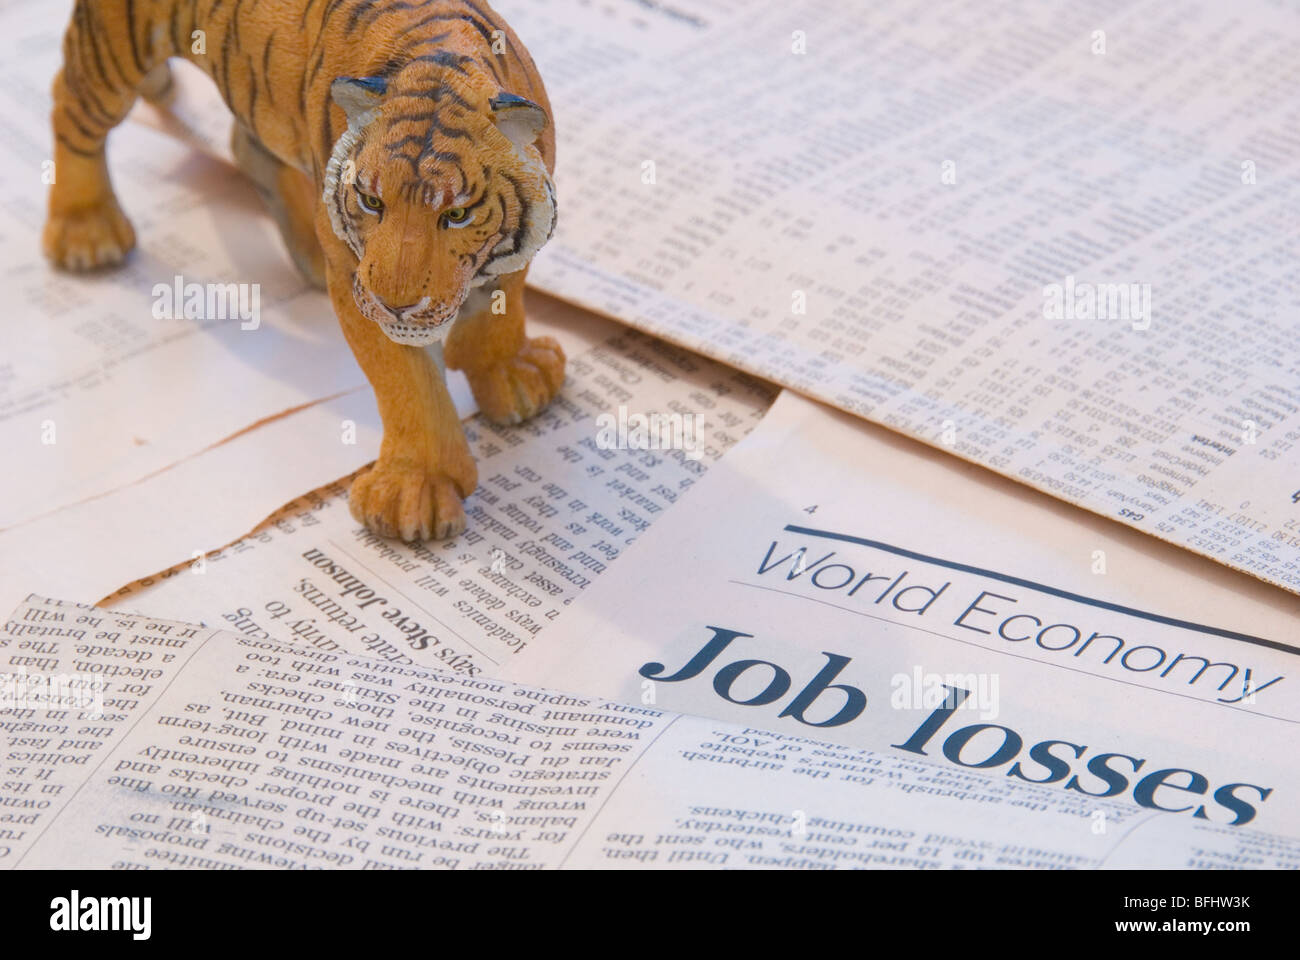 A tiger over the World Economy reports of Job Losses representing the Asia Markets - Stock Image